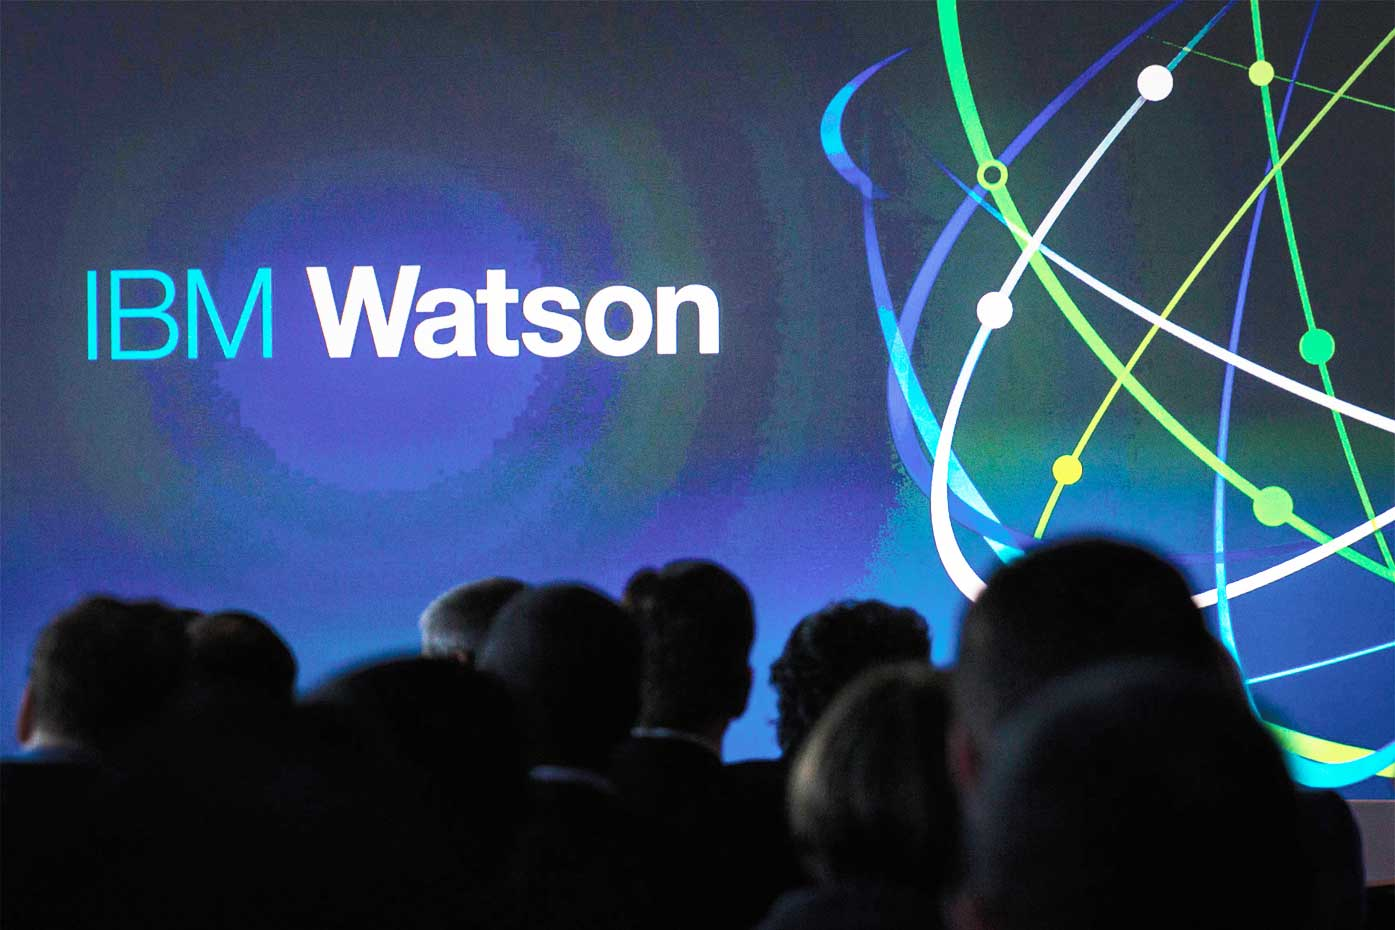 IBM Watson Trend App Can Predict Your Shopping List